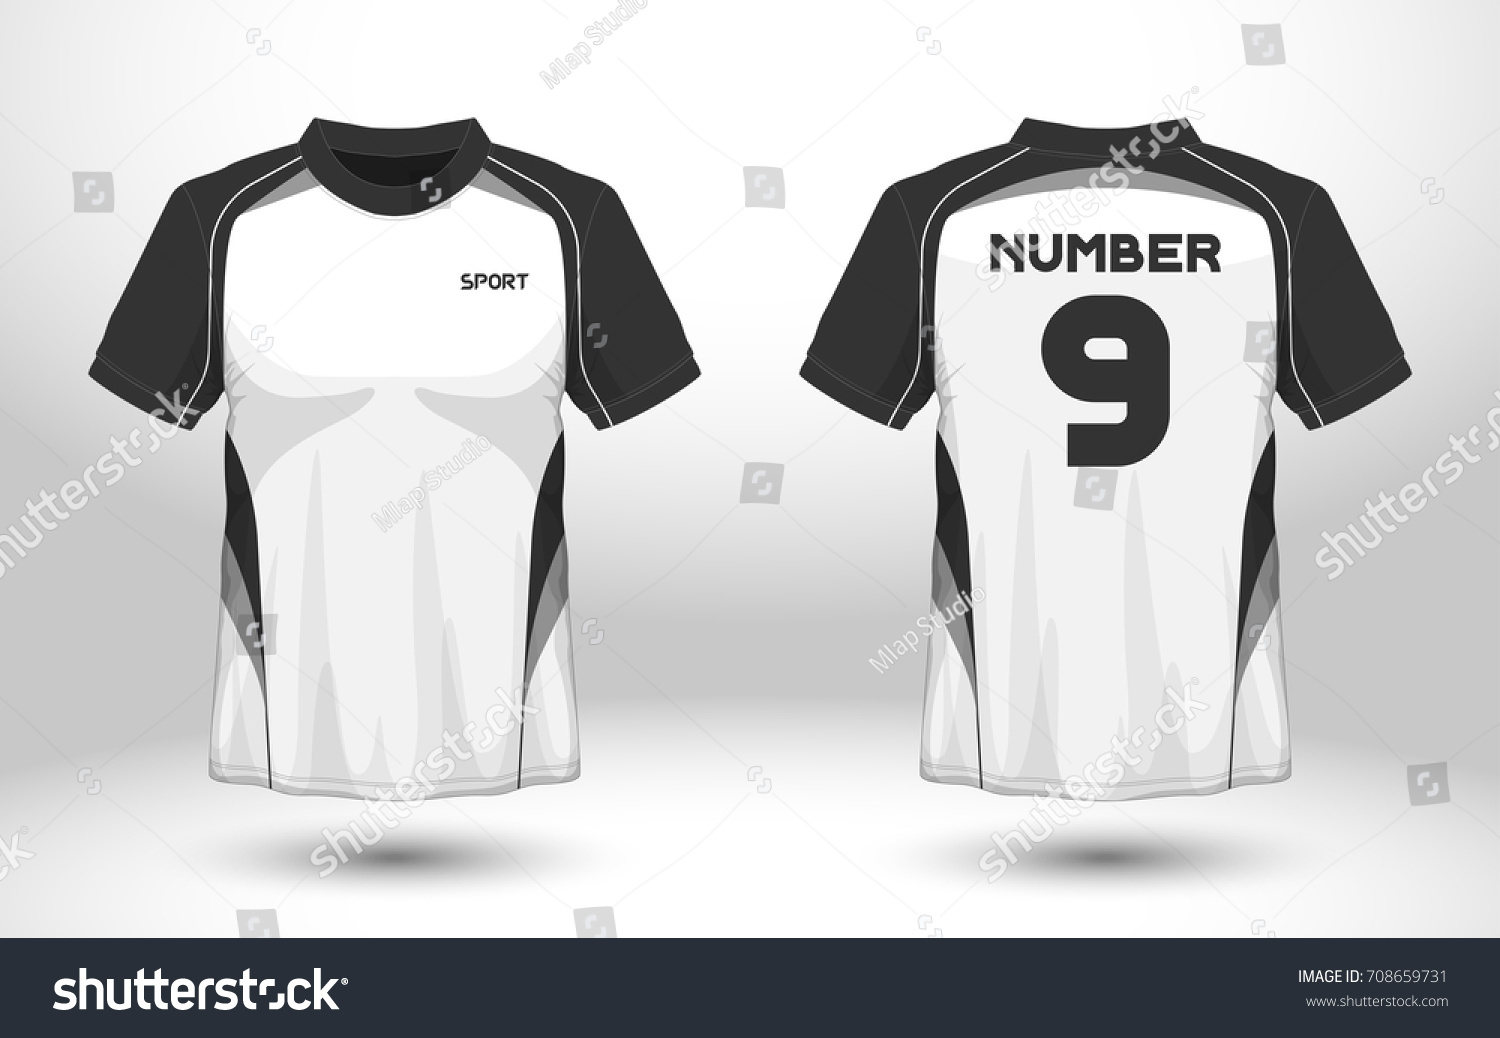 Black White Layout Football Sport Tshirt Stock Vector Royalty Free